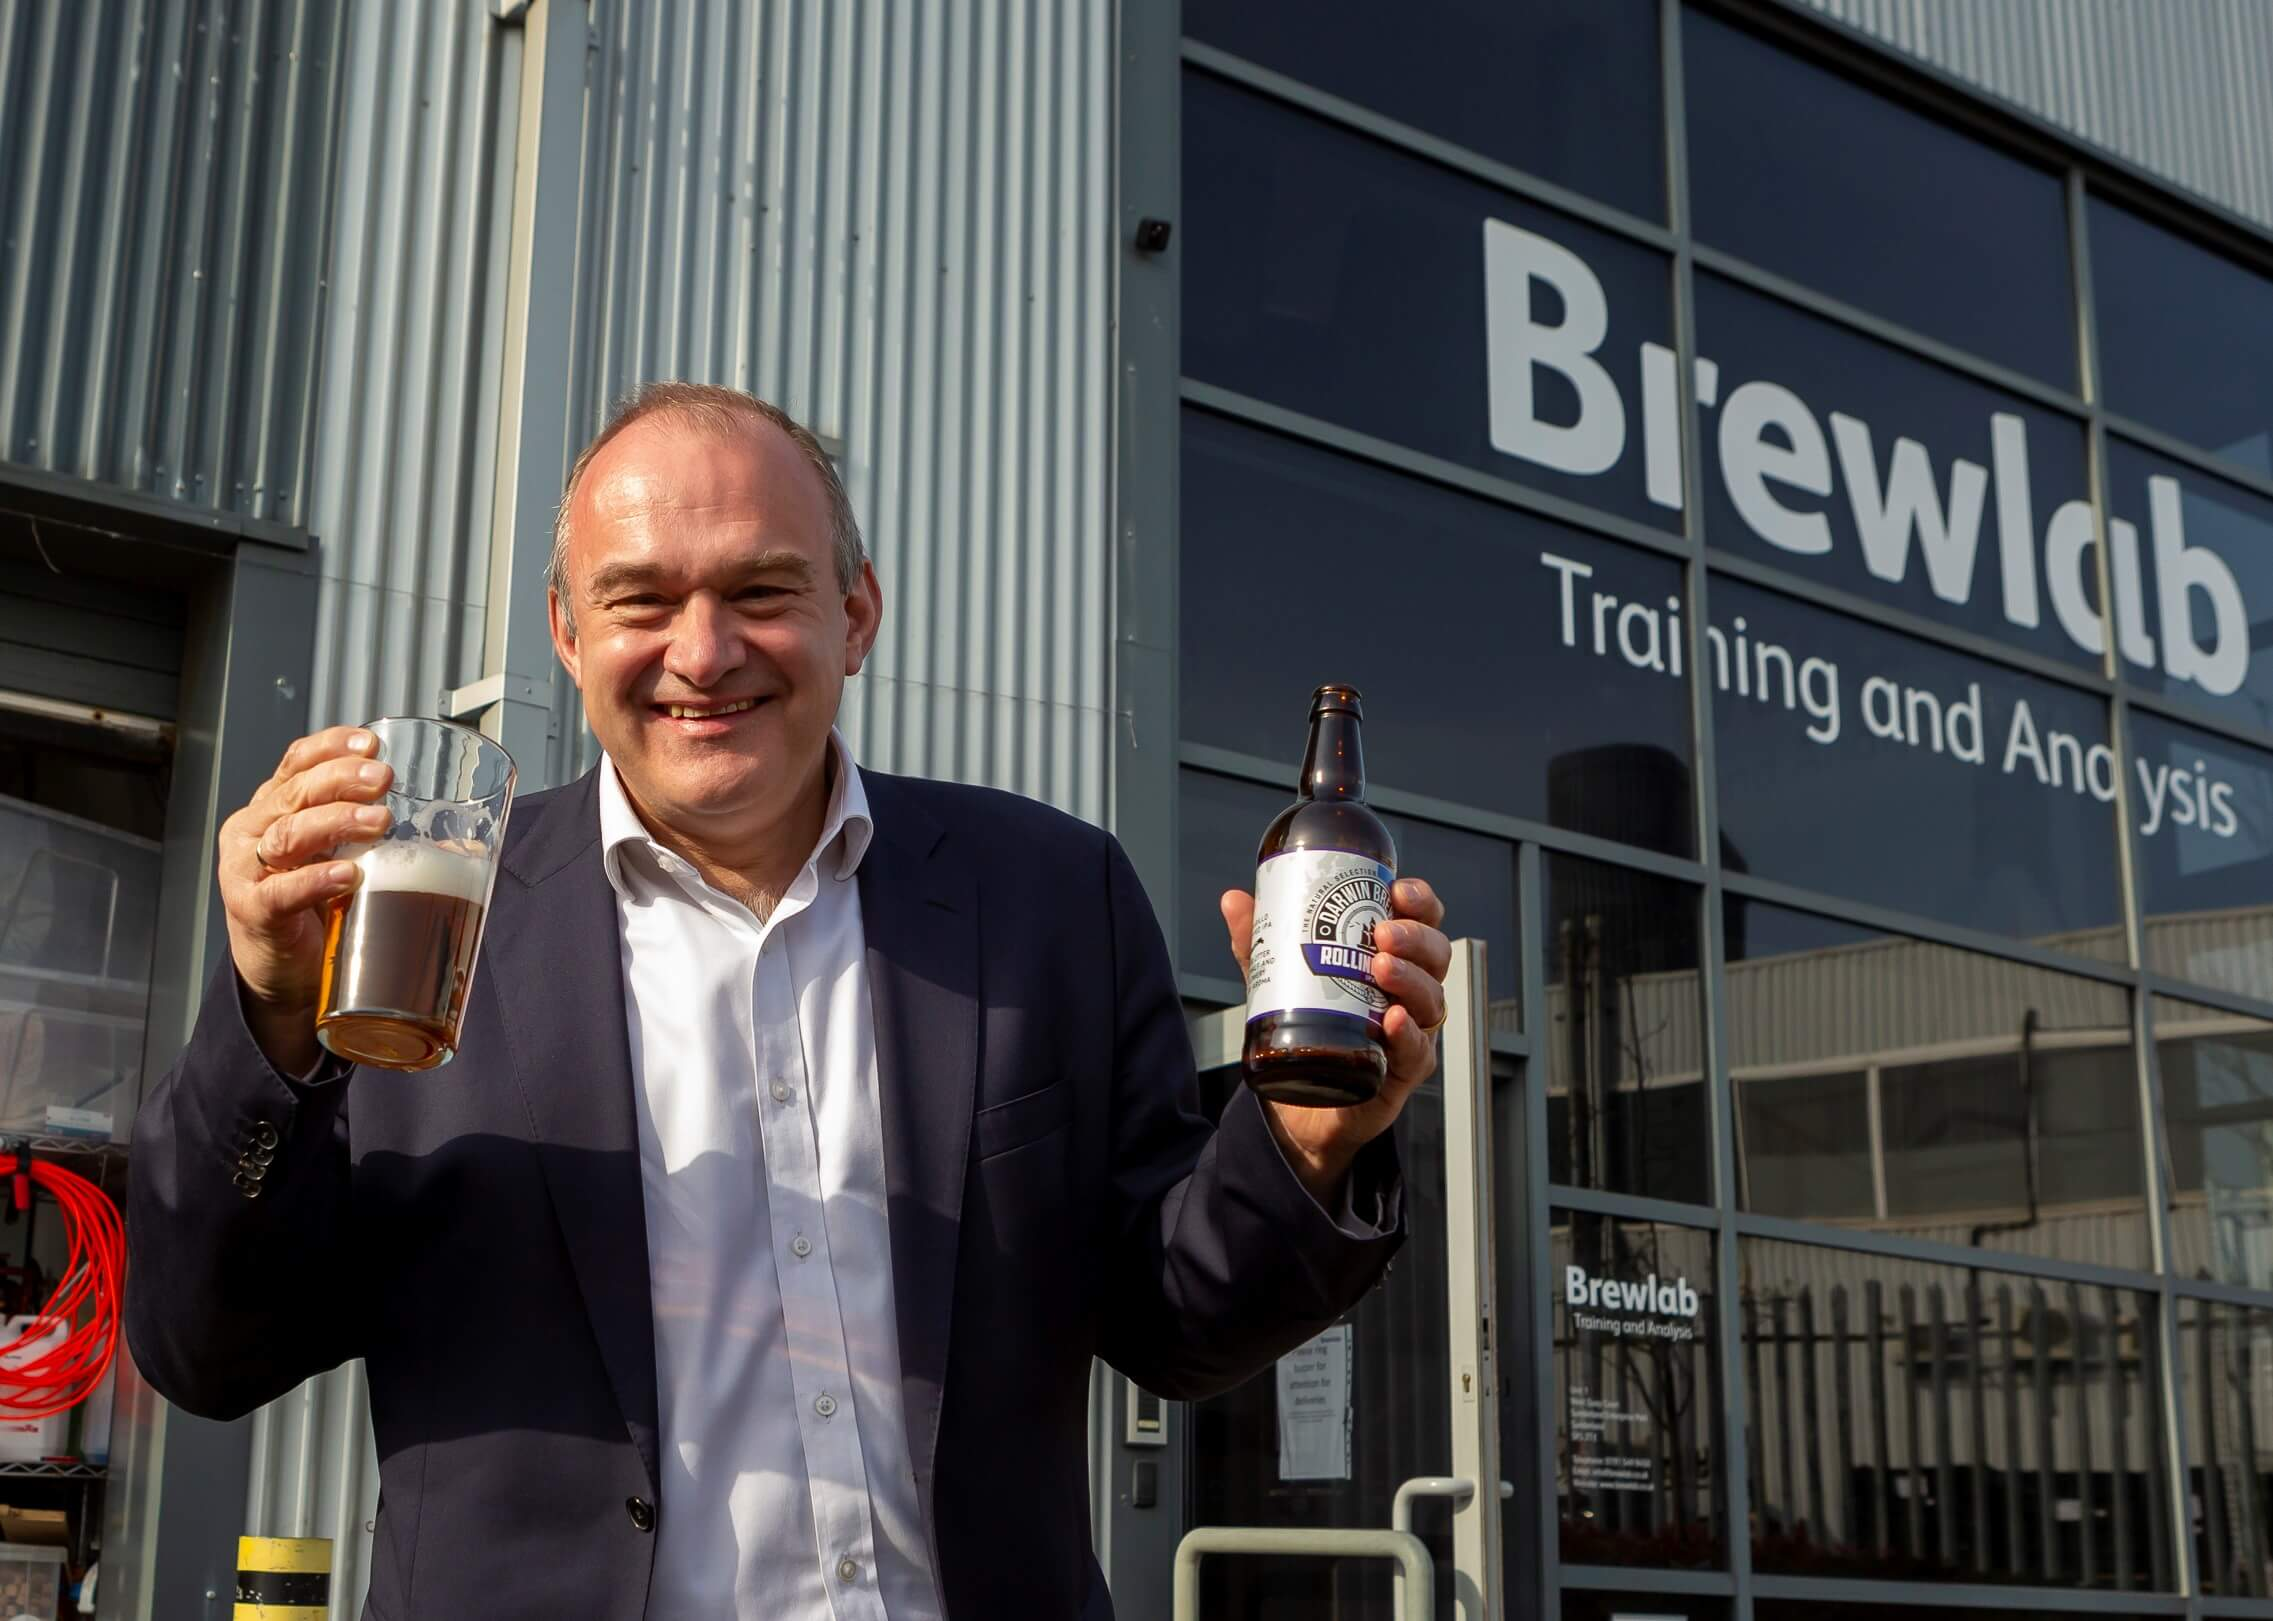 Ed Davey visits a small business in Sunderland